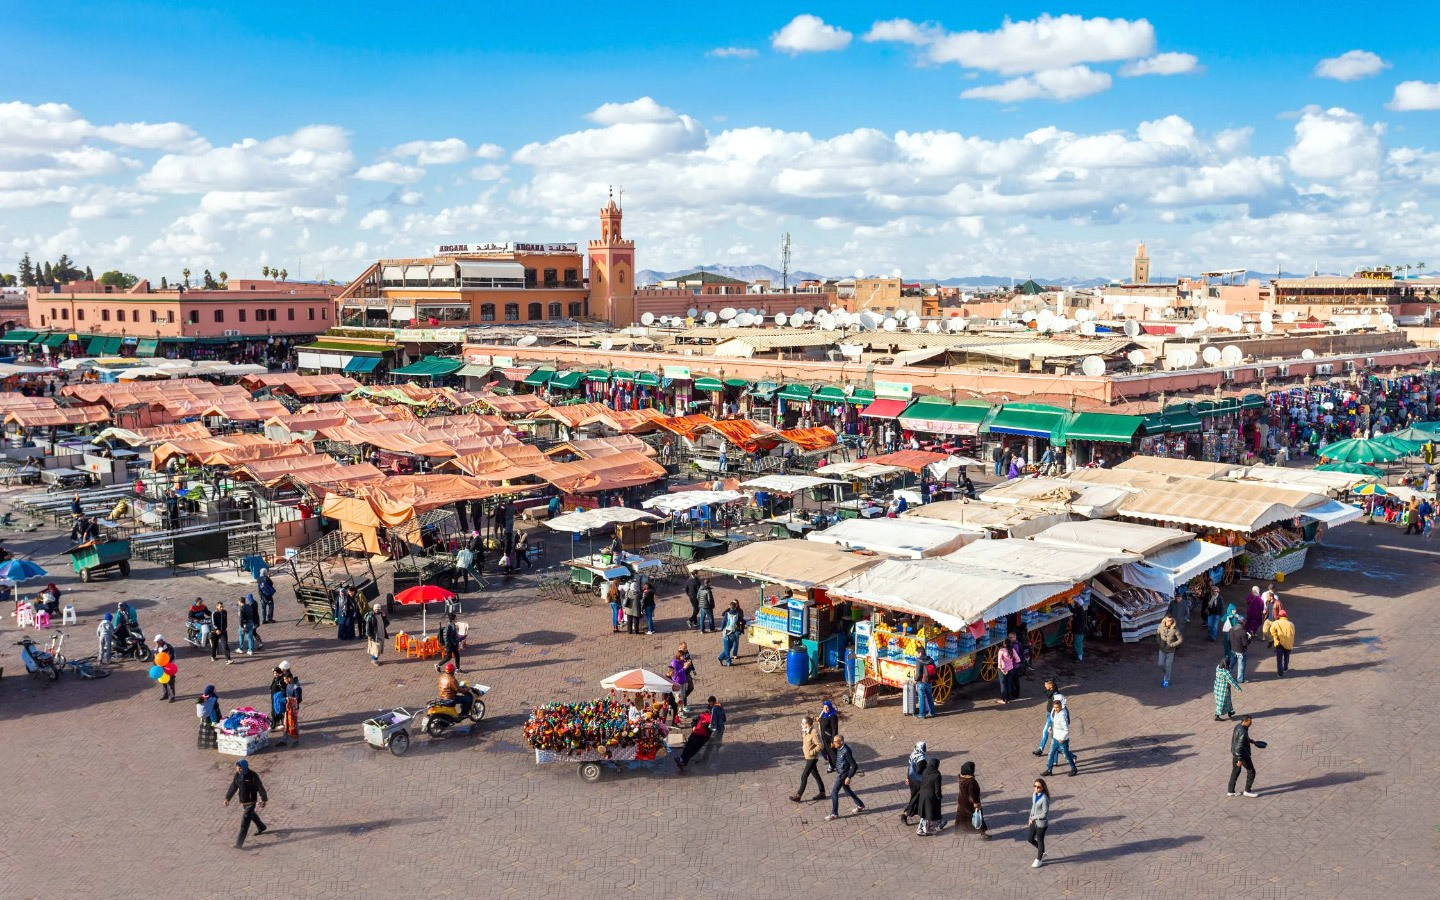 The Djemma El-Fna square in Marrakech medina